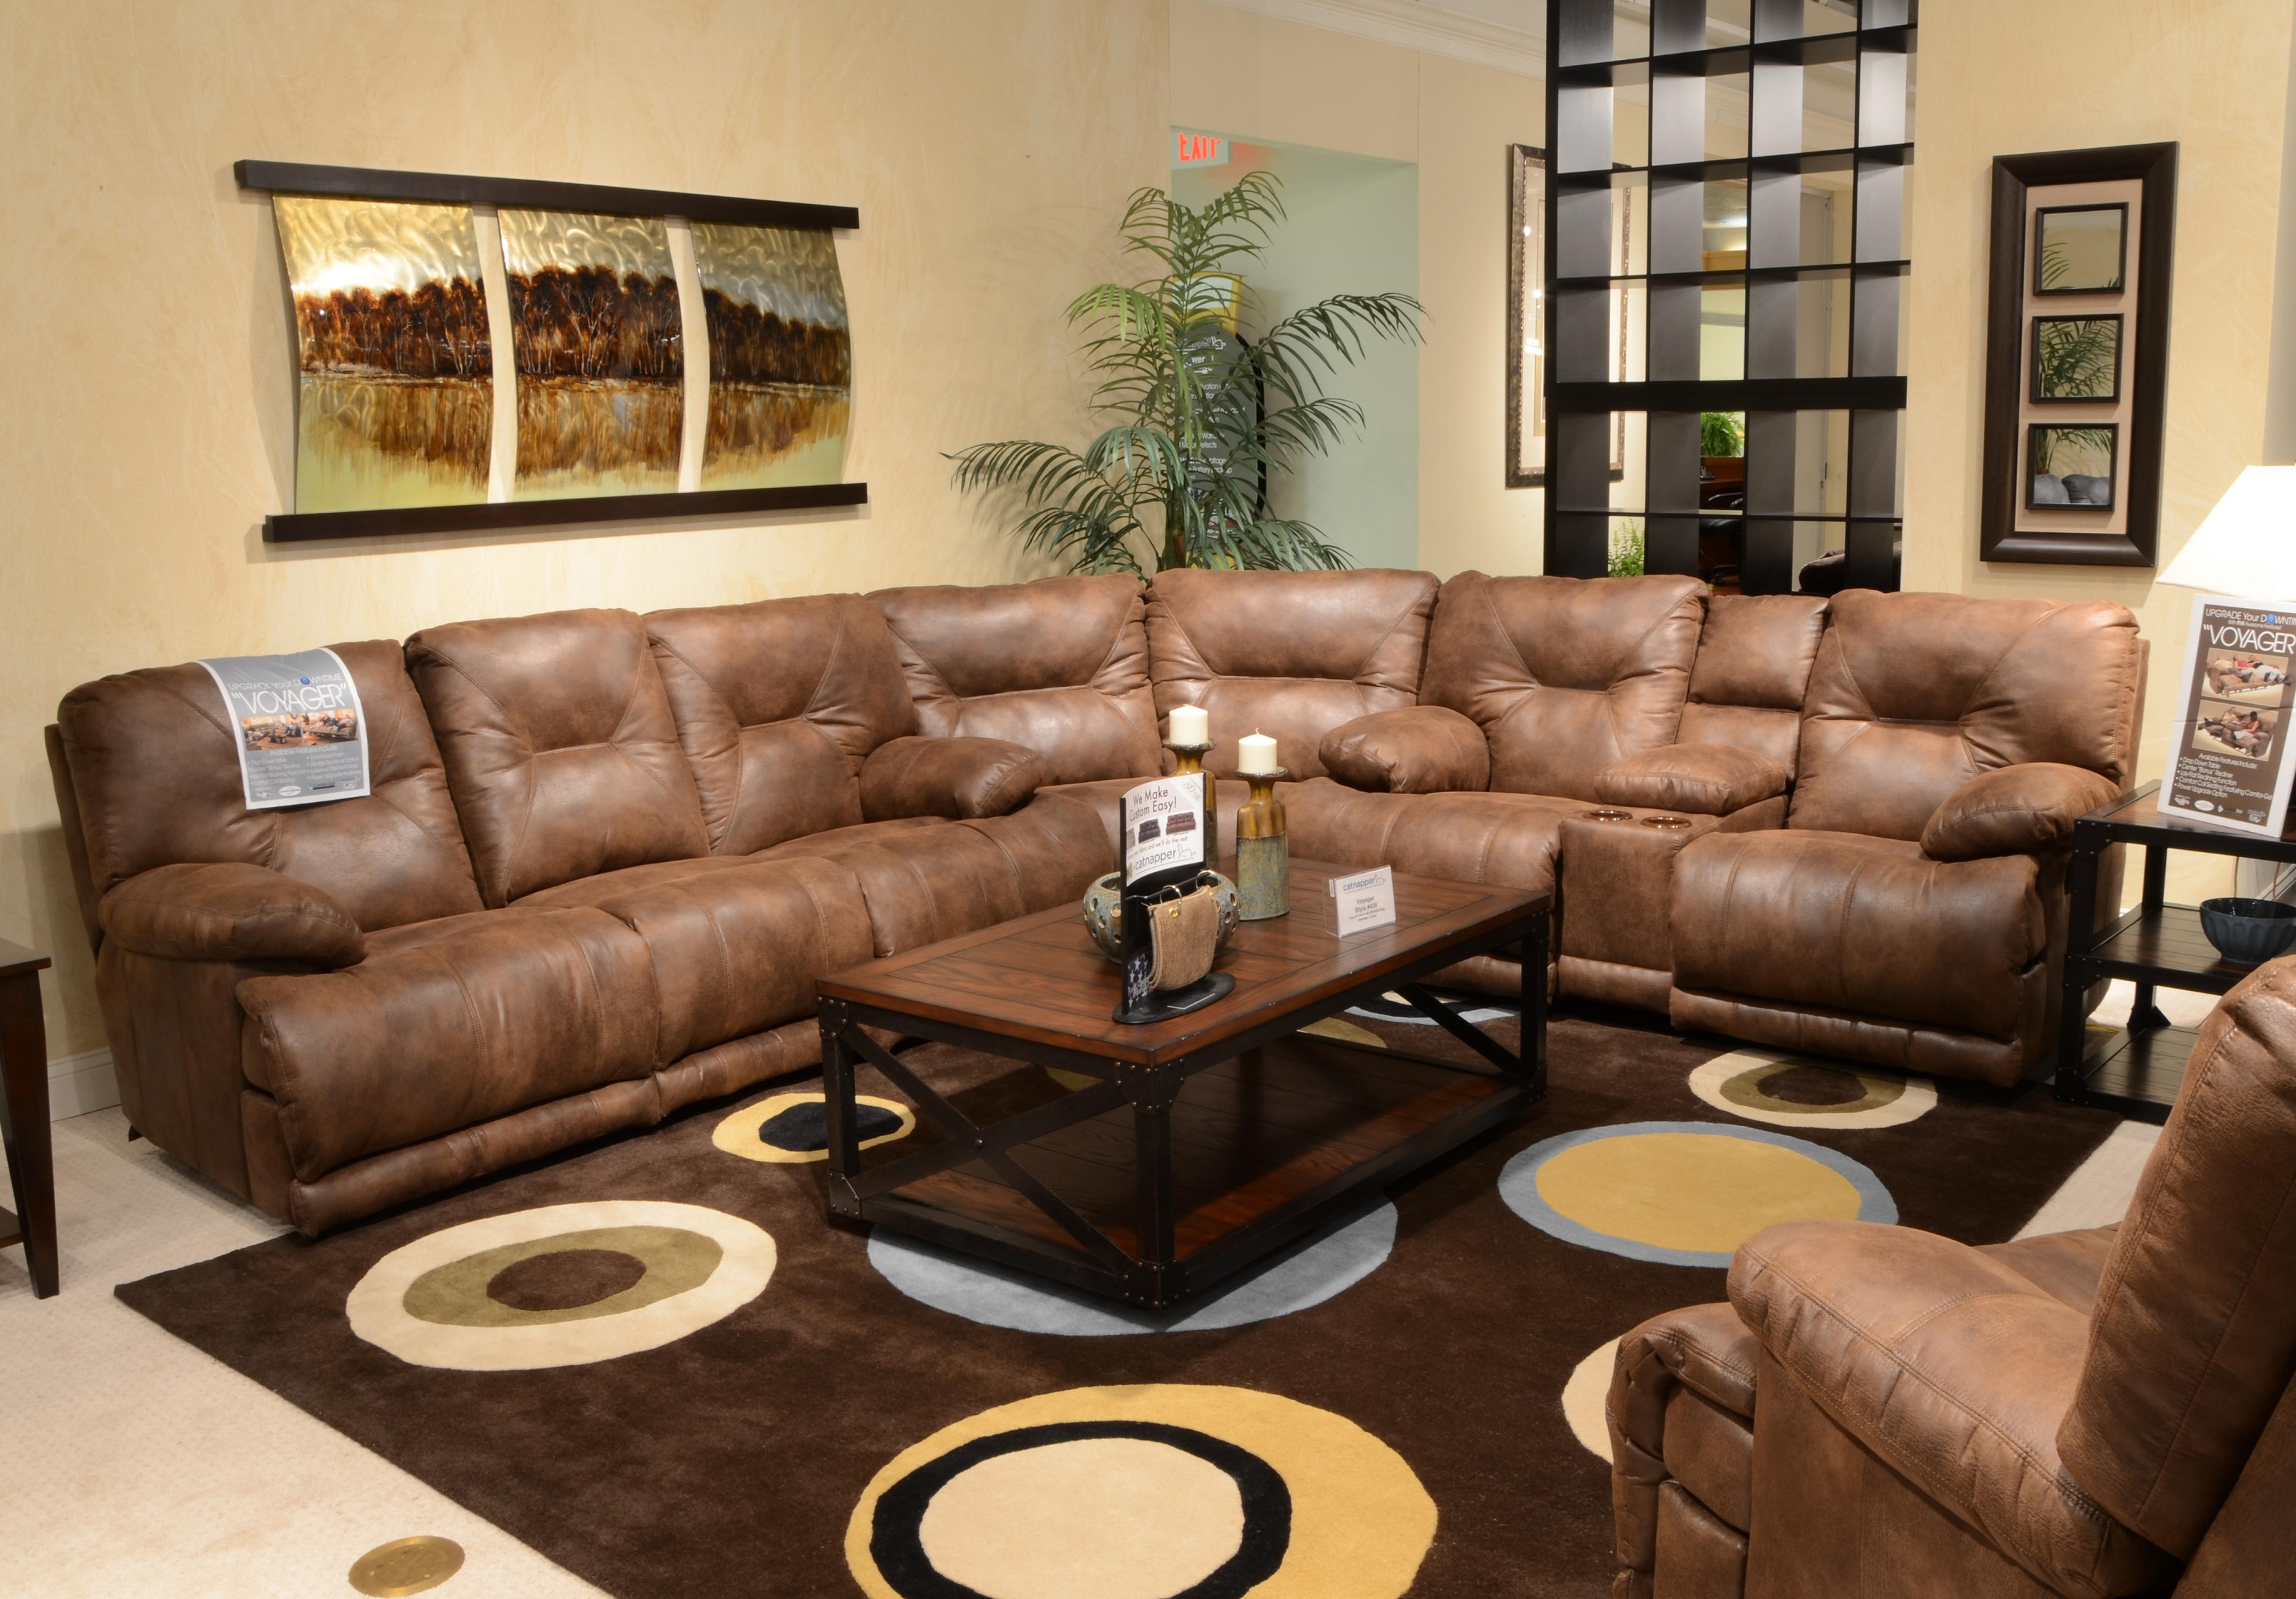 Exciting sofa sectionals for home interior design with leather sectional sofa and sectional sleeper sofa